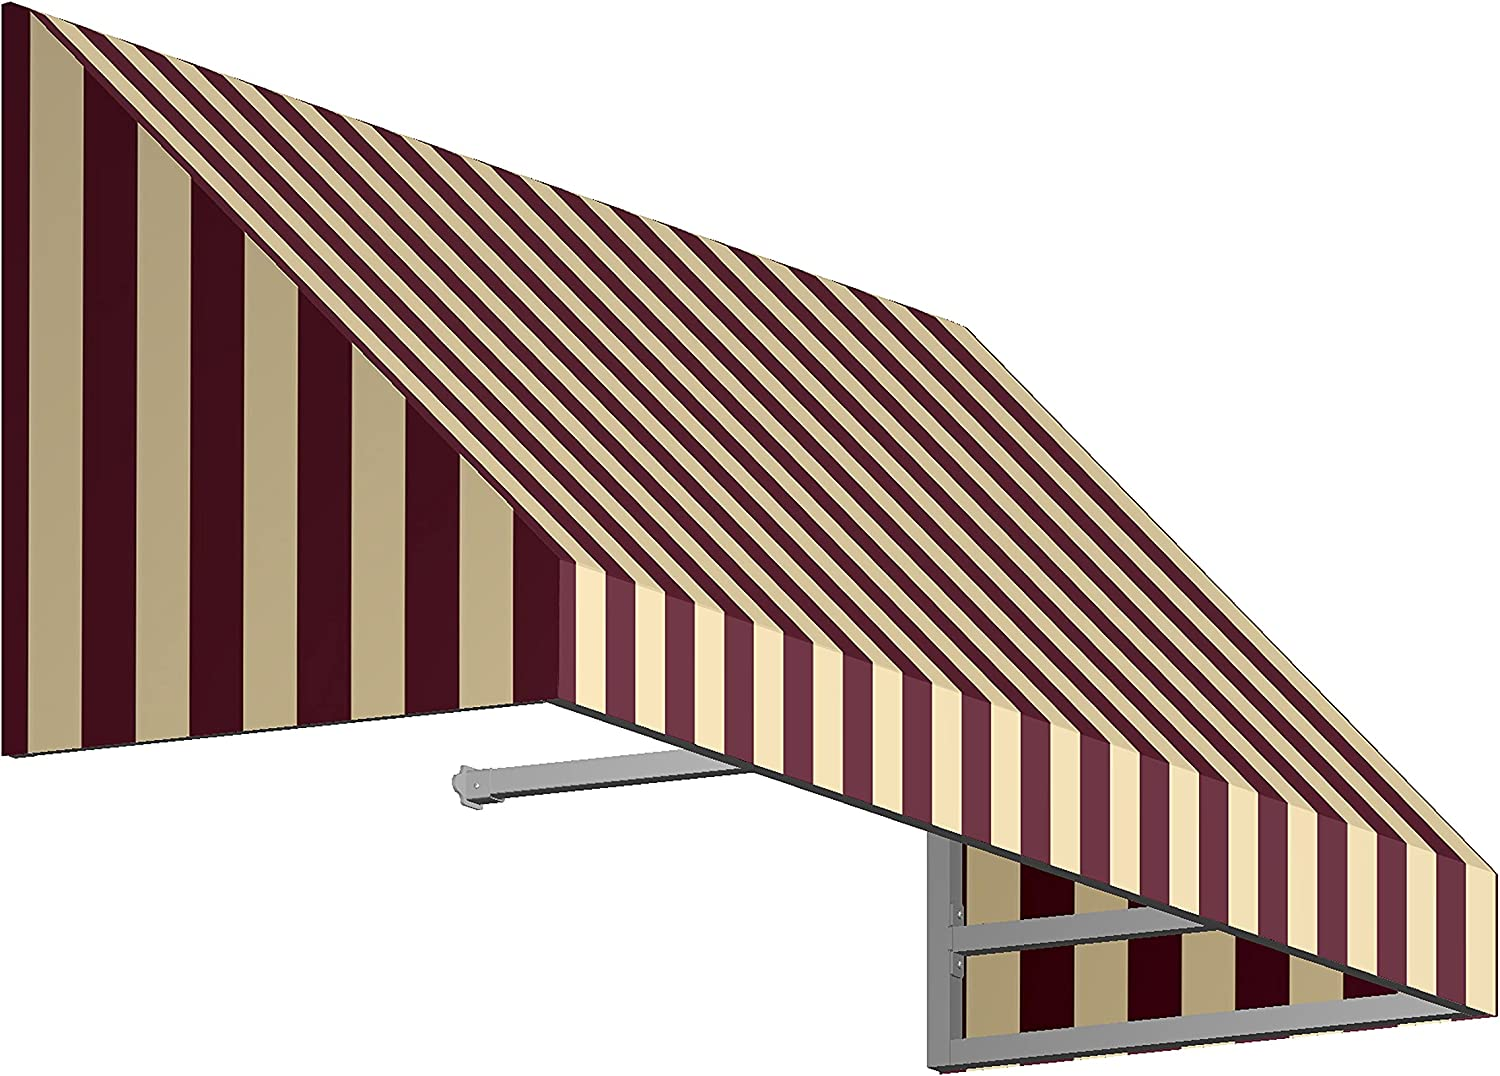 AWNTECH 6 ft. New Yorker Rigid Max 88% OFF Window Raleigh Mall Door Style Valance Awning